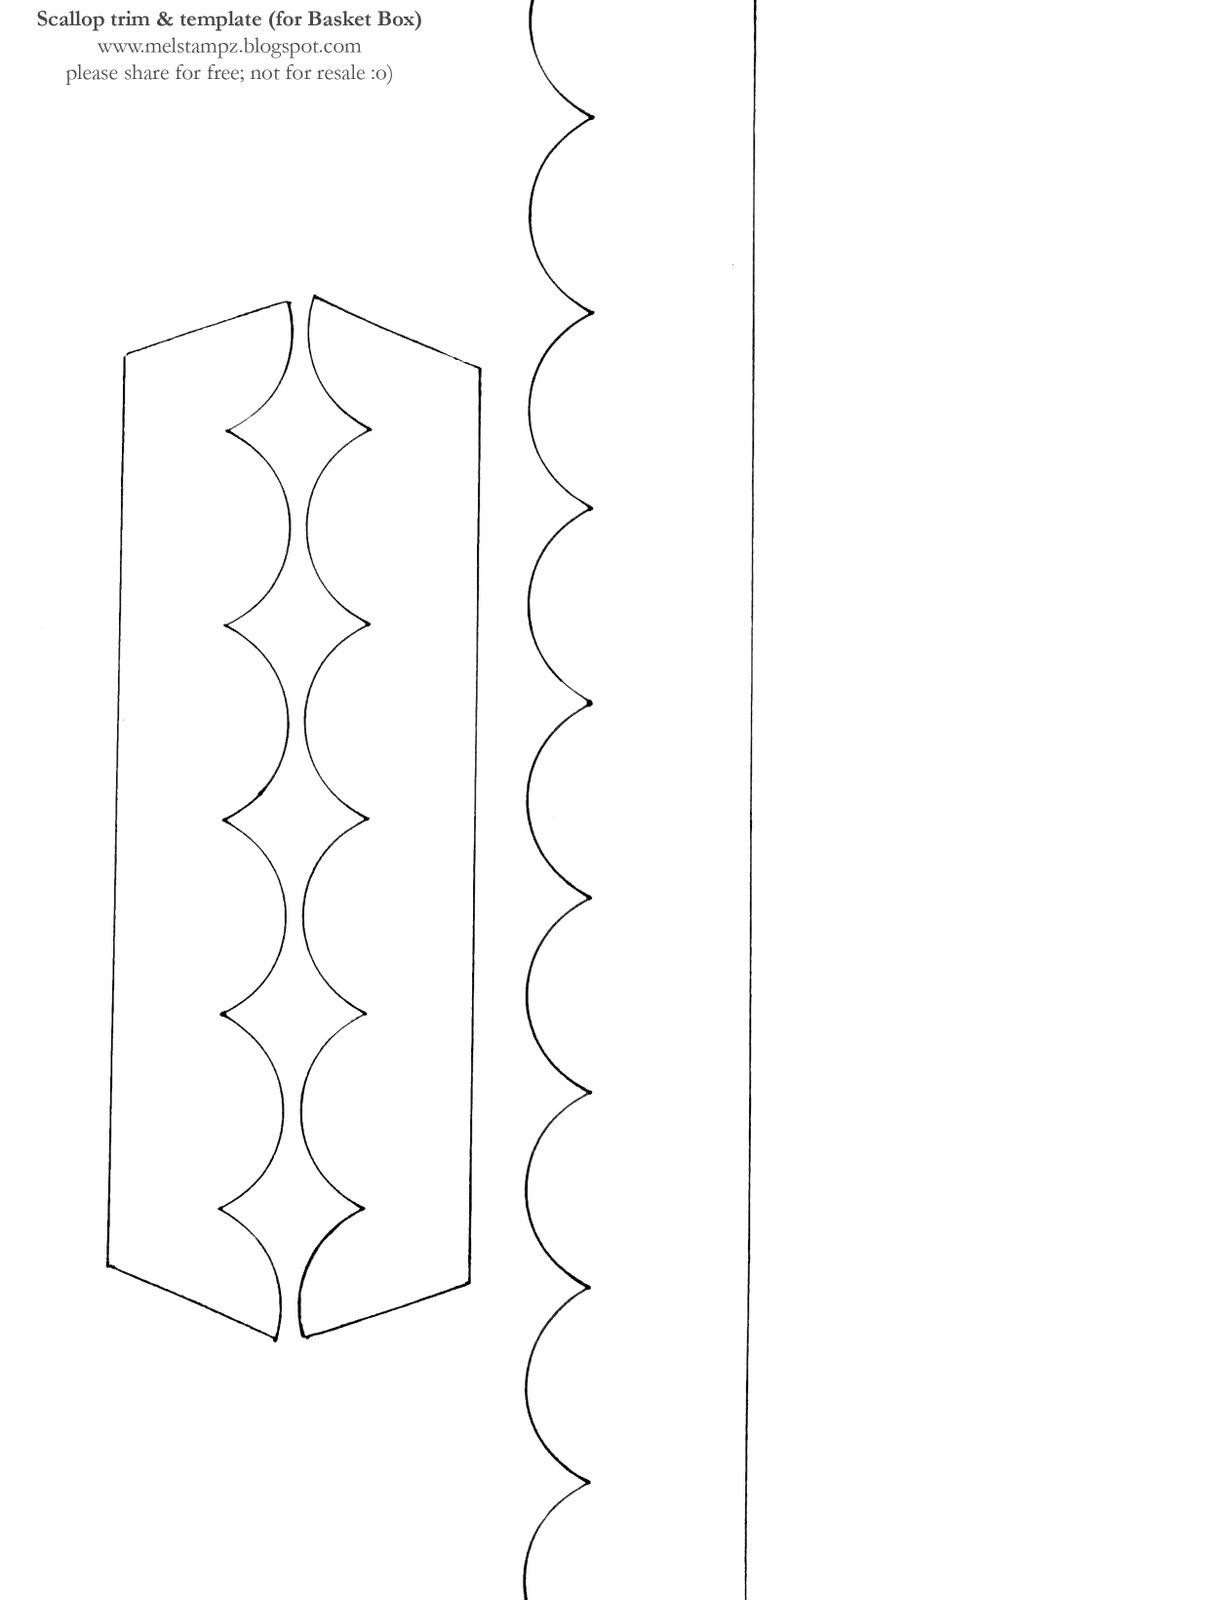 picture relating to Scalloped Edge Template Printable referred to as Scallop hem gain behavior DIYs + Tutorials Templates